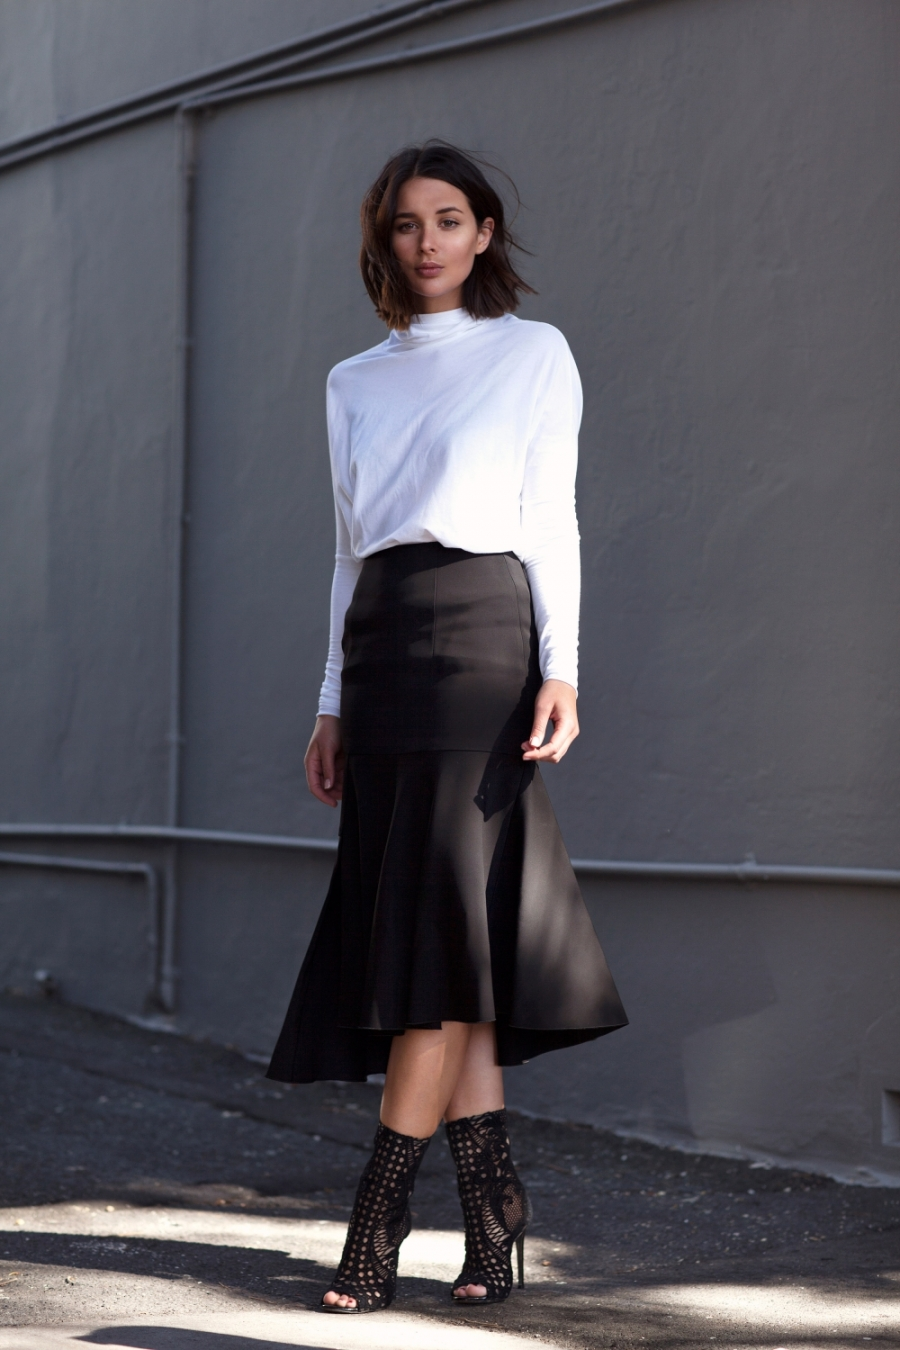 Sara Donaldson in a simple black skirt and shoes and a white top Skirt: Josh Goot, Top: Country Road, Shoes: Balmain